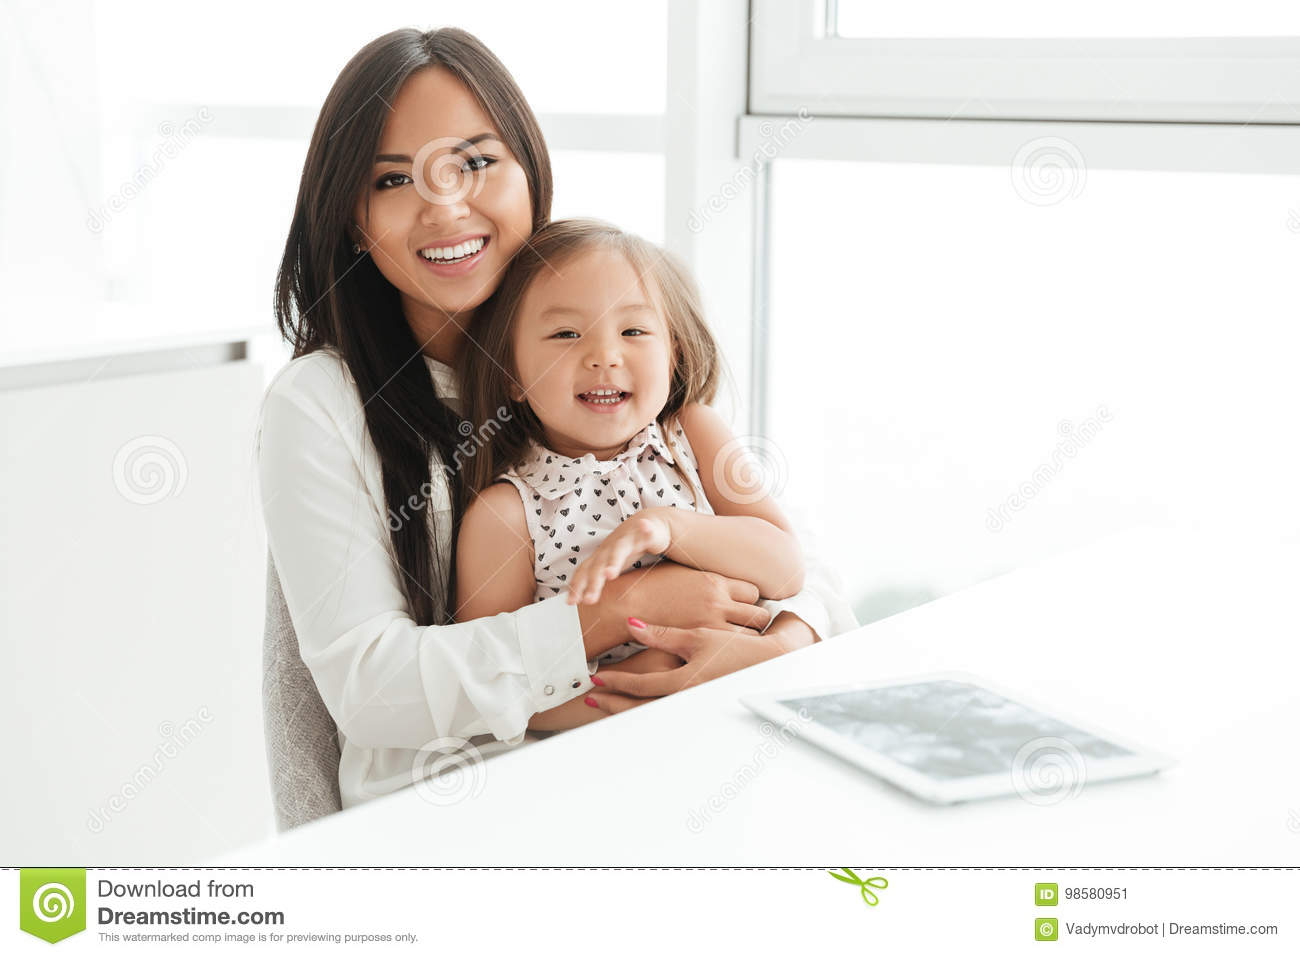 Recommend you asian mom pictures